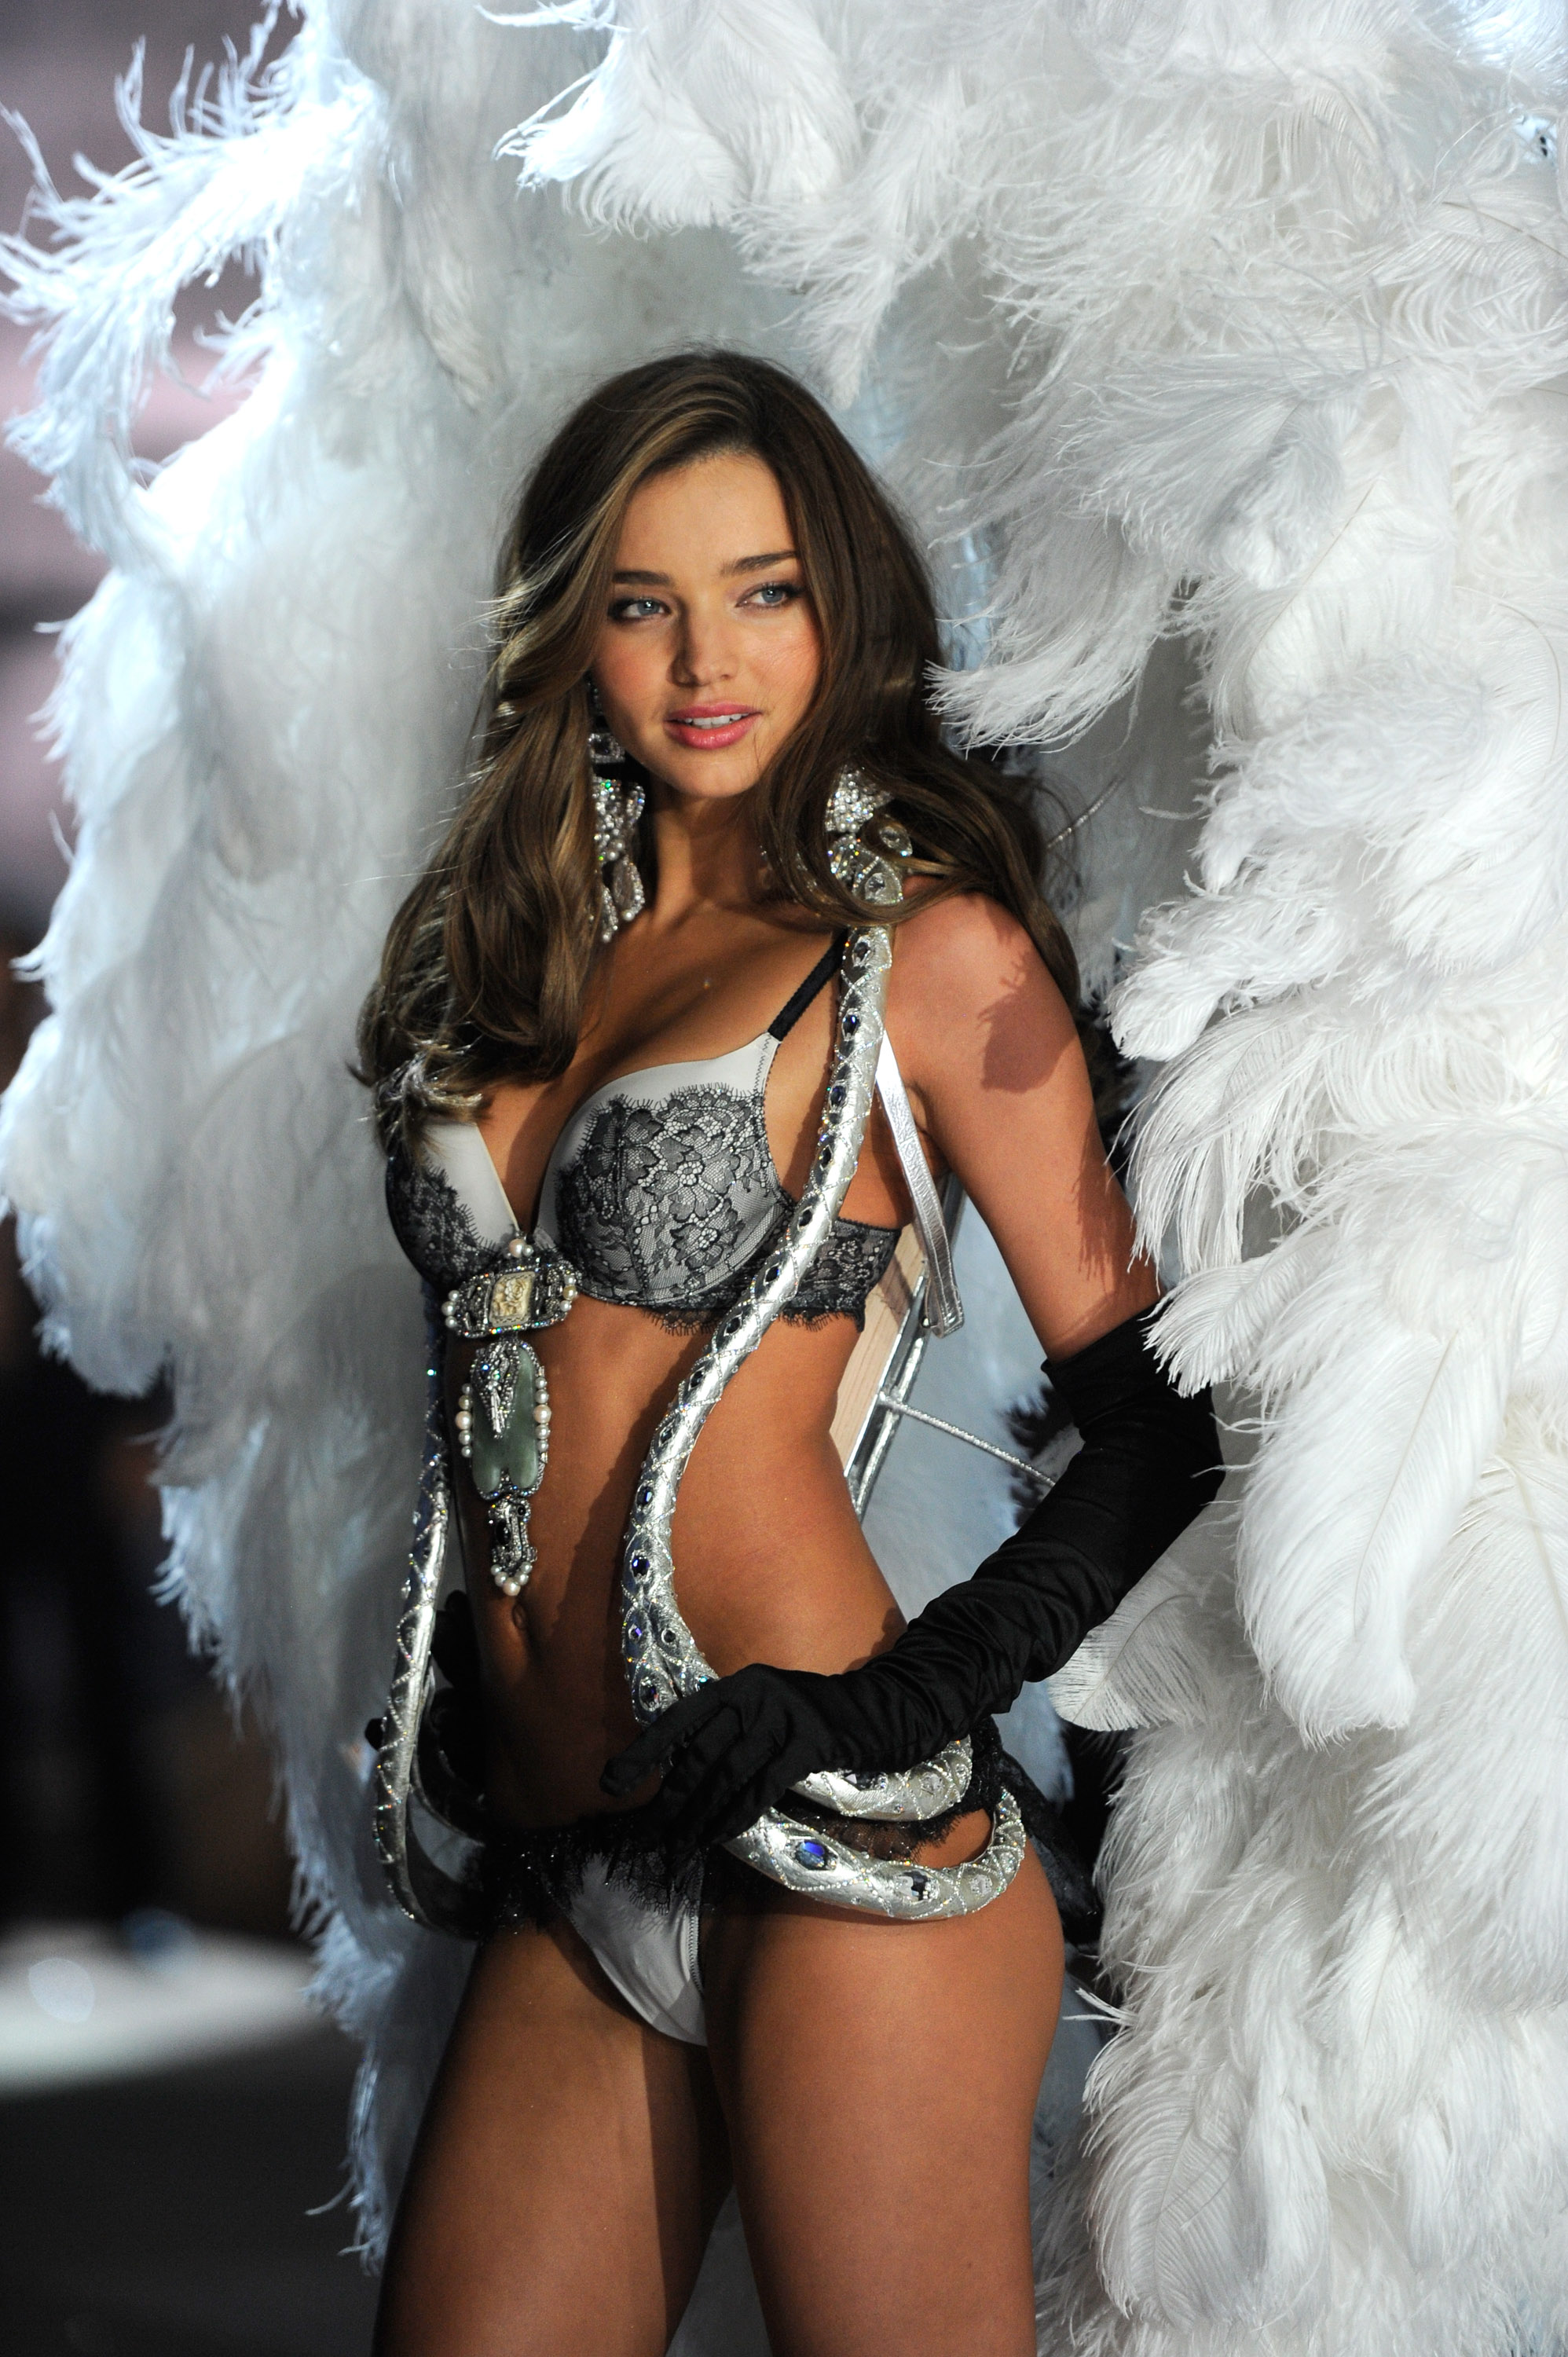 <p>10. Miranda Kerr </p> <p>Victoria's Secret Angel Miranda Kerr walks the runway during the 2012 Victoria's Secret show. </p> <p>Kerr walked in the Victoria's Secret shows from 2006 to 2012, skipping in 2010 when she was pregnant with her son Flynn Bloom. She walked away from her $1 million contract in 2013.</p>